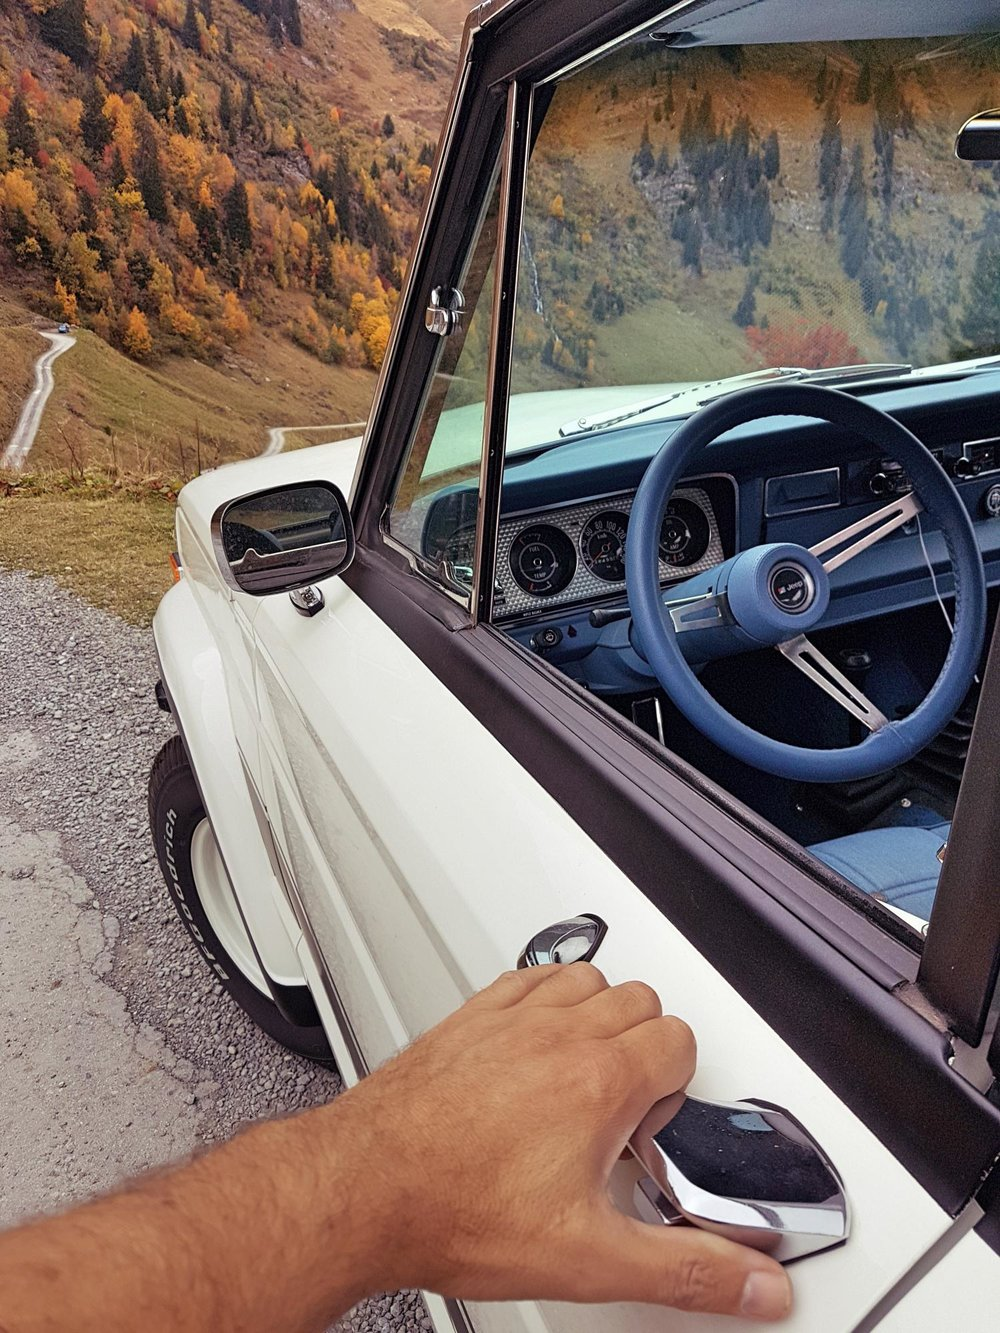 jeep-cherokee-chief-1978-shooting-morgins-switzerland-88.jpg